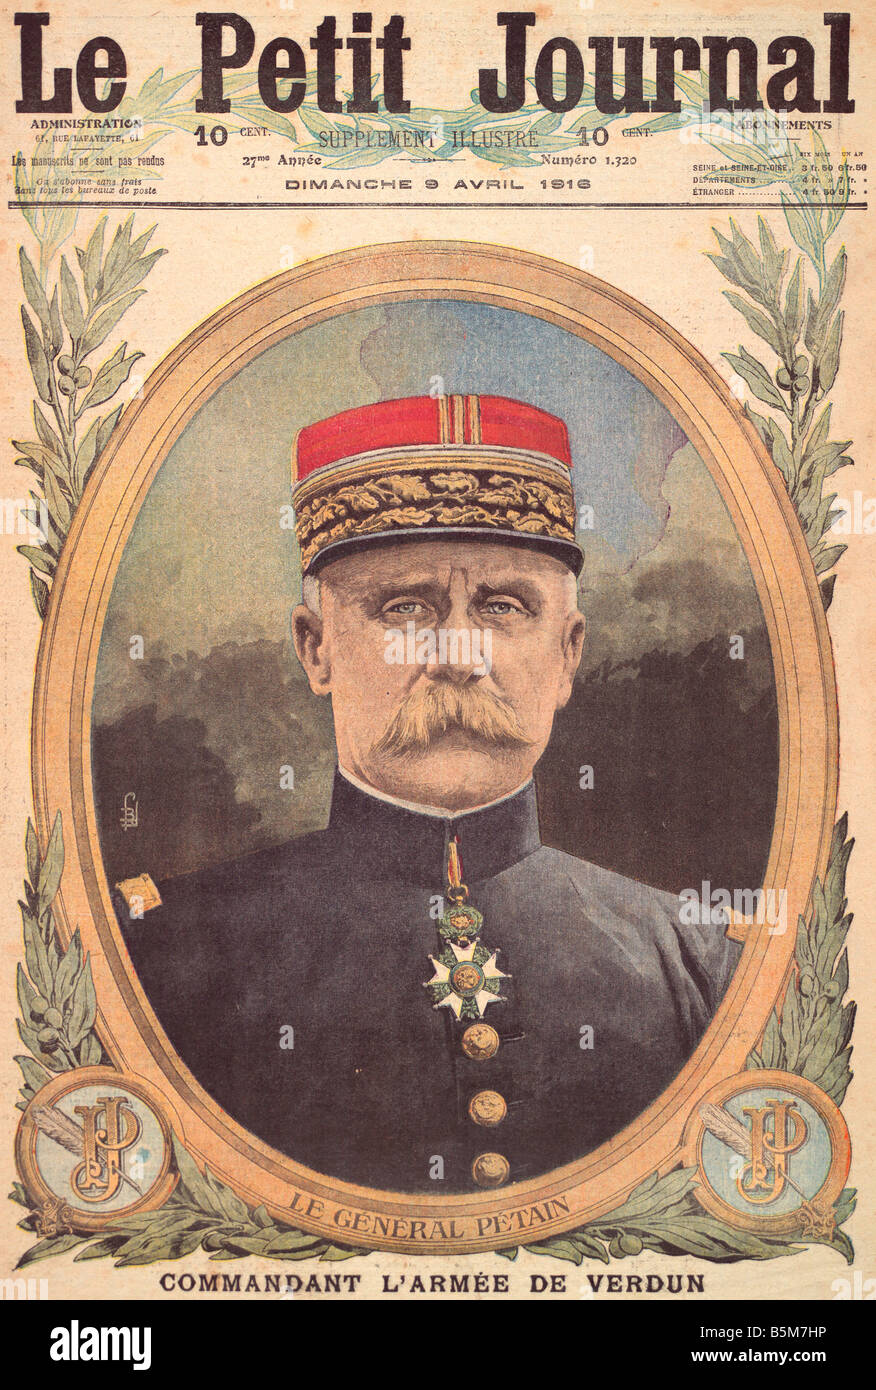 1FK 1101 C1916 E Marshal Petain 1916 Fr Pet Journ Petain Philippe French marshal and politician Cauchy a la Tour - Stock Image